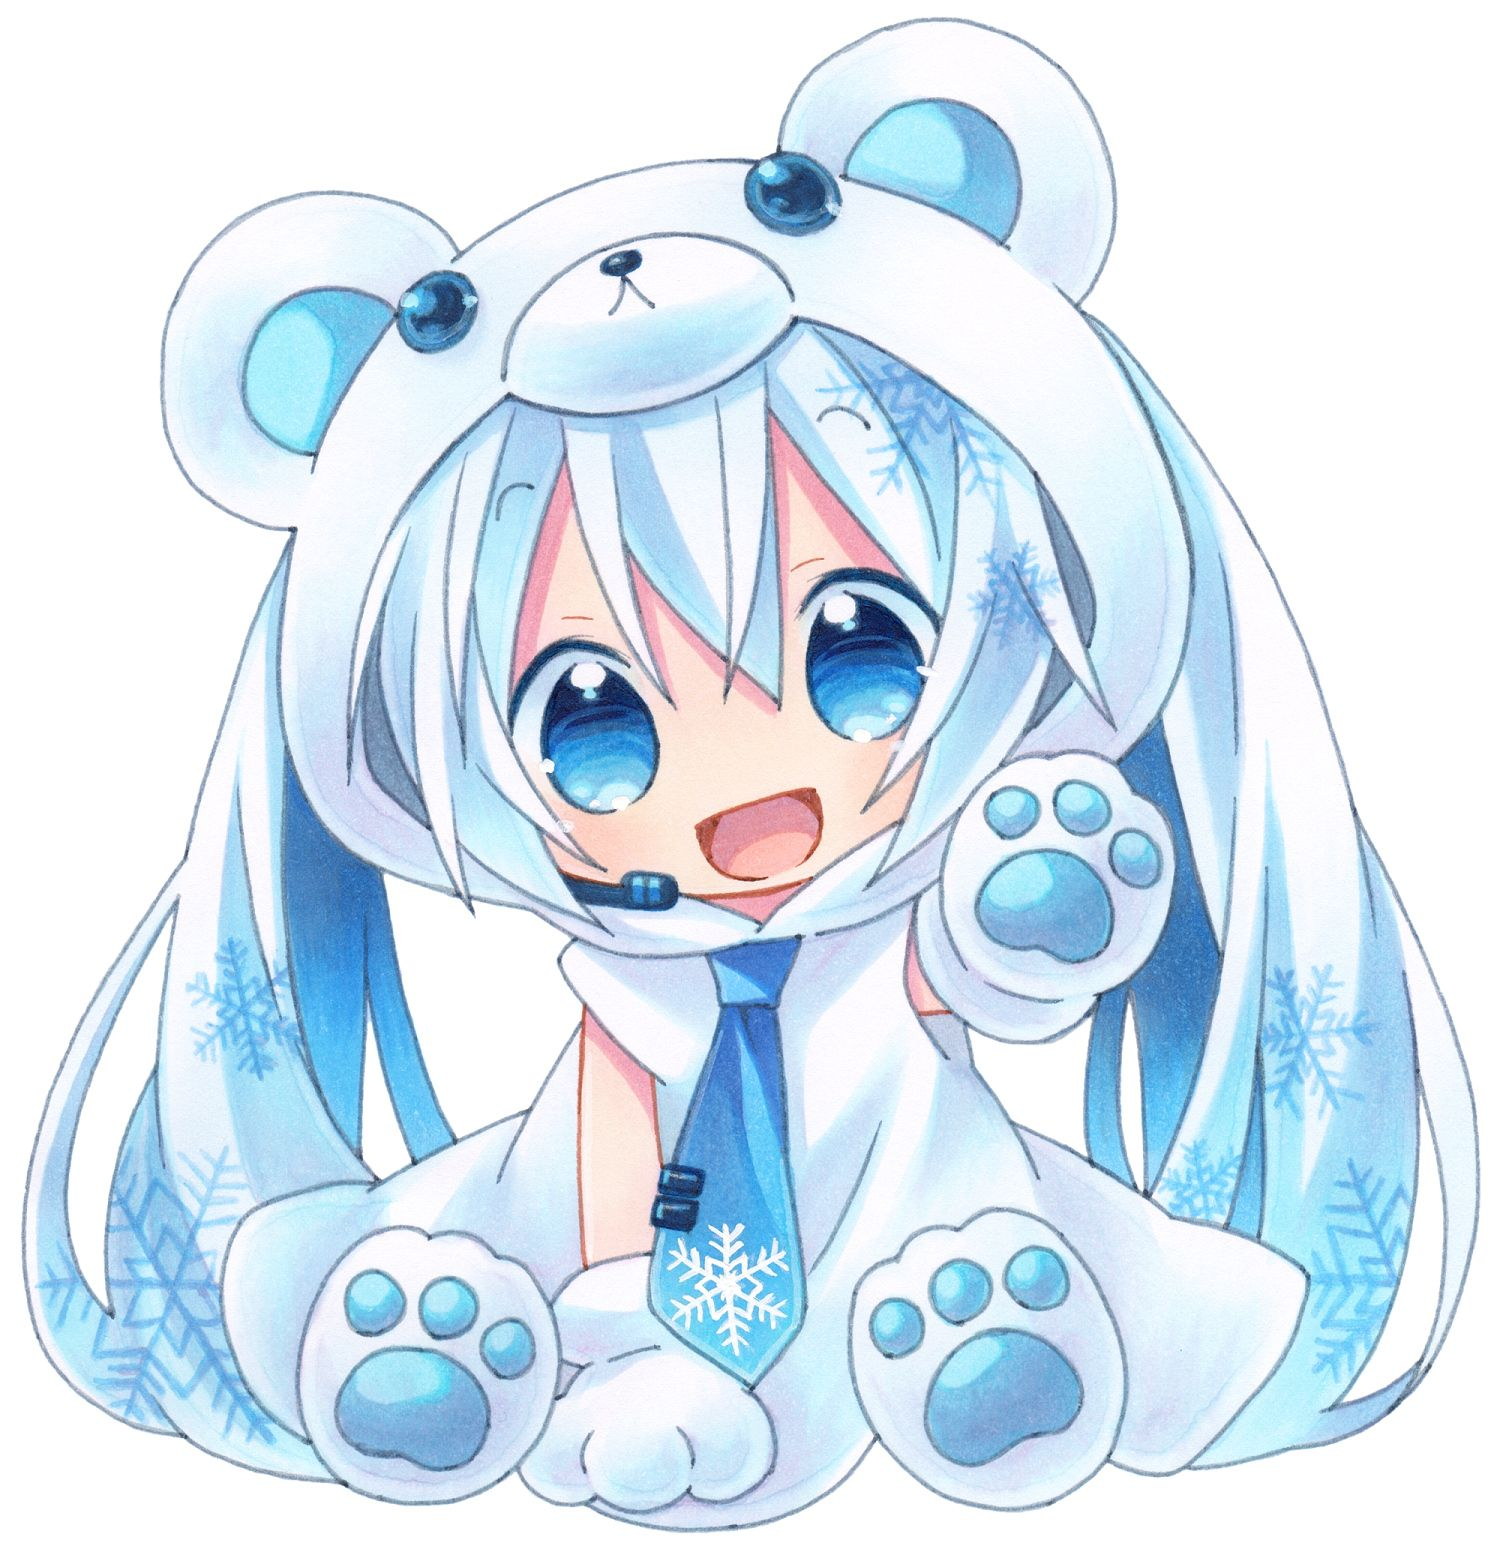 Anime Girl Chibi: Chibi Girls And Cats Wallpapers